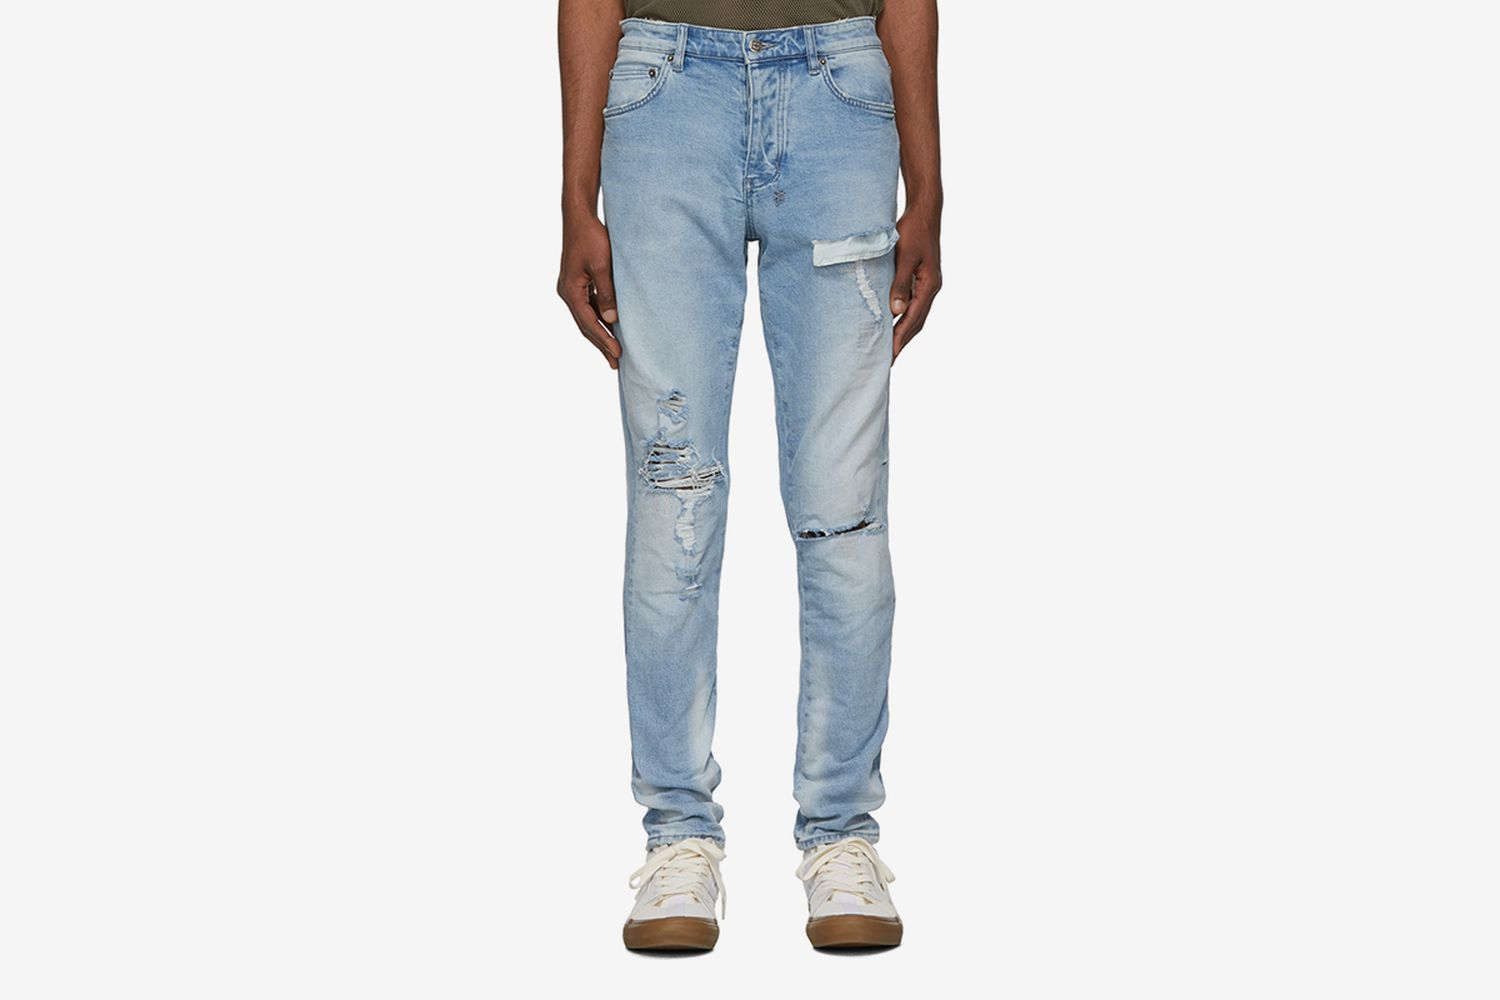 Chitch Jeans